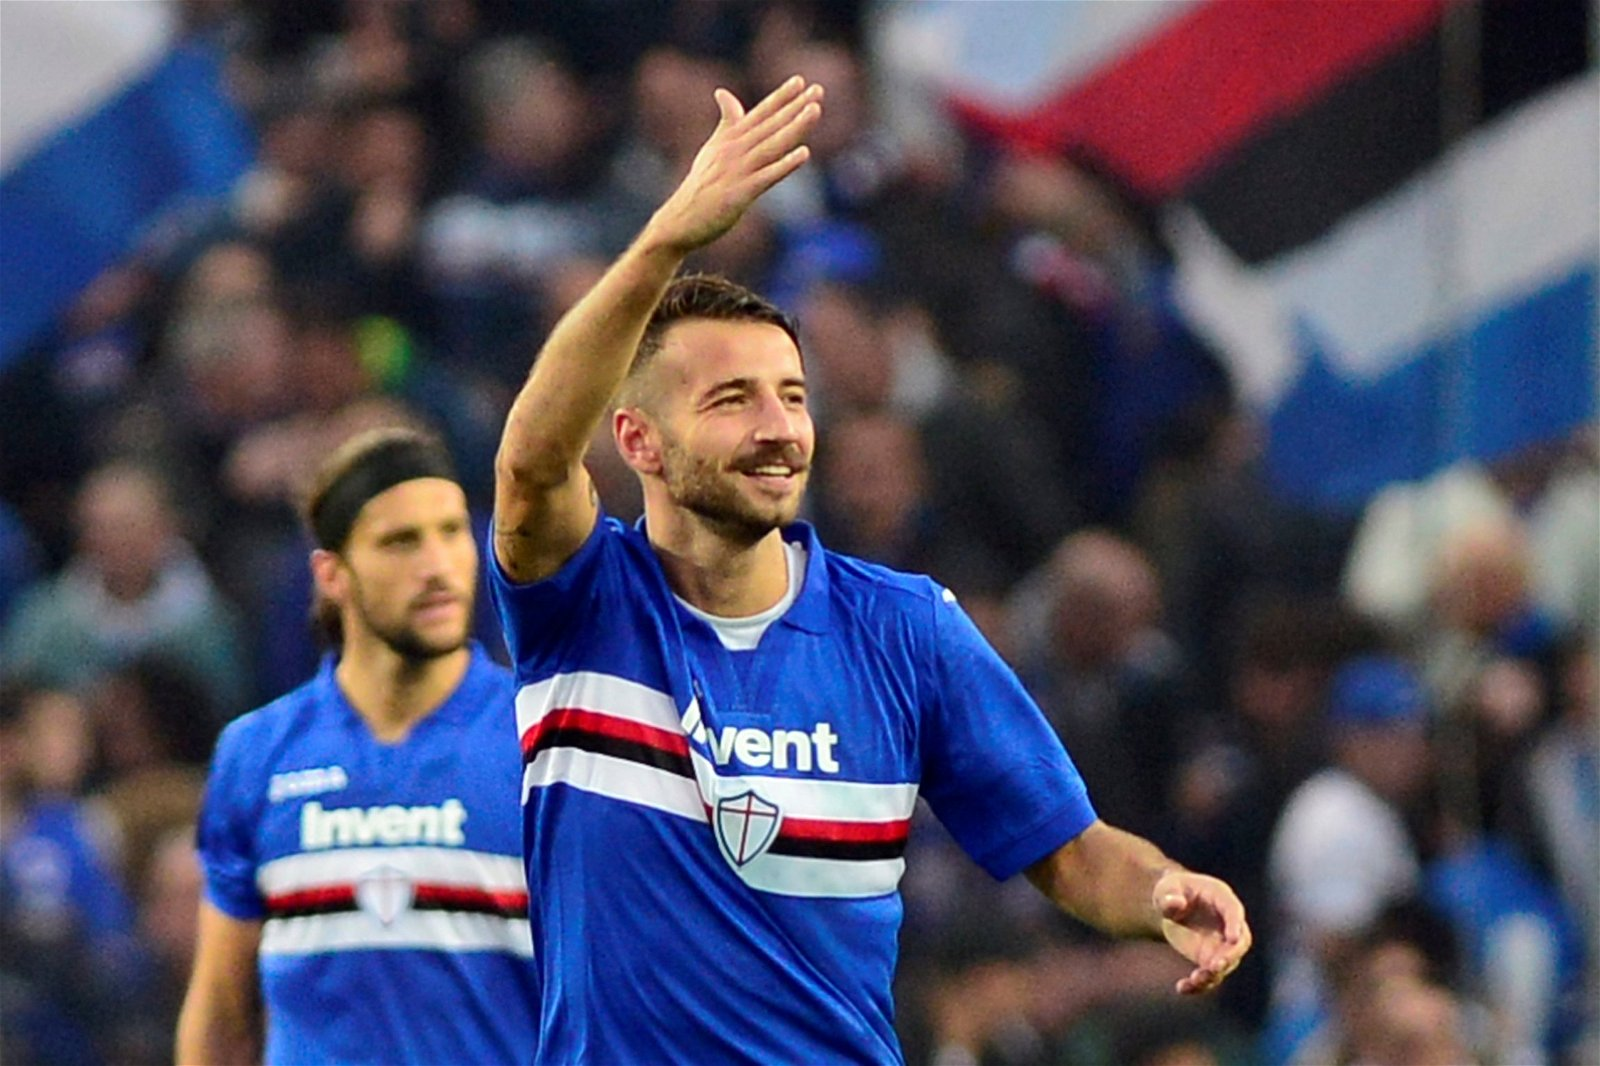 Sampdoria's Gian Marco Ferrari celebrates scoring against Juventus